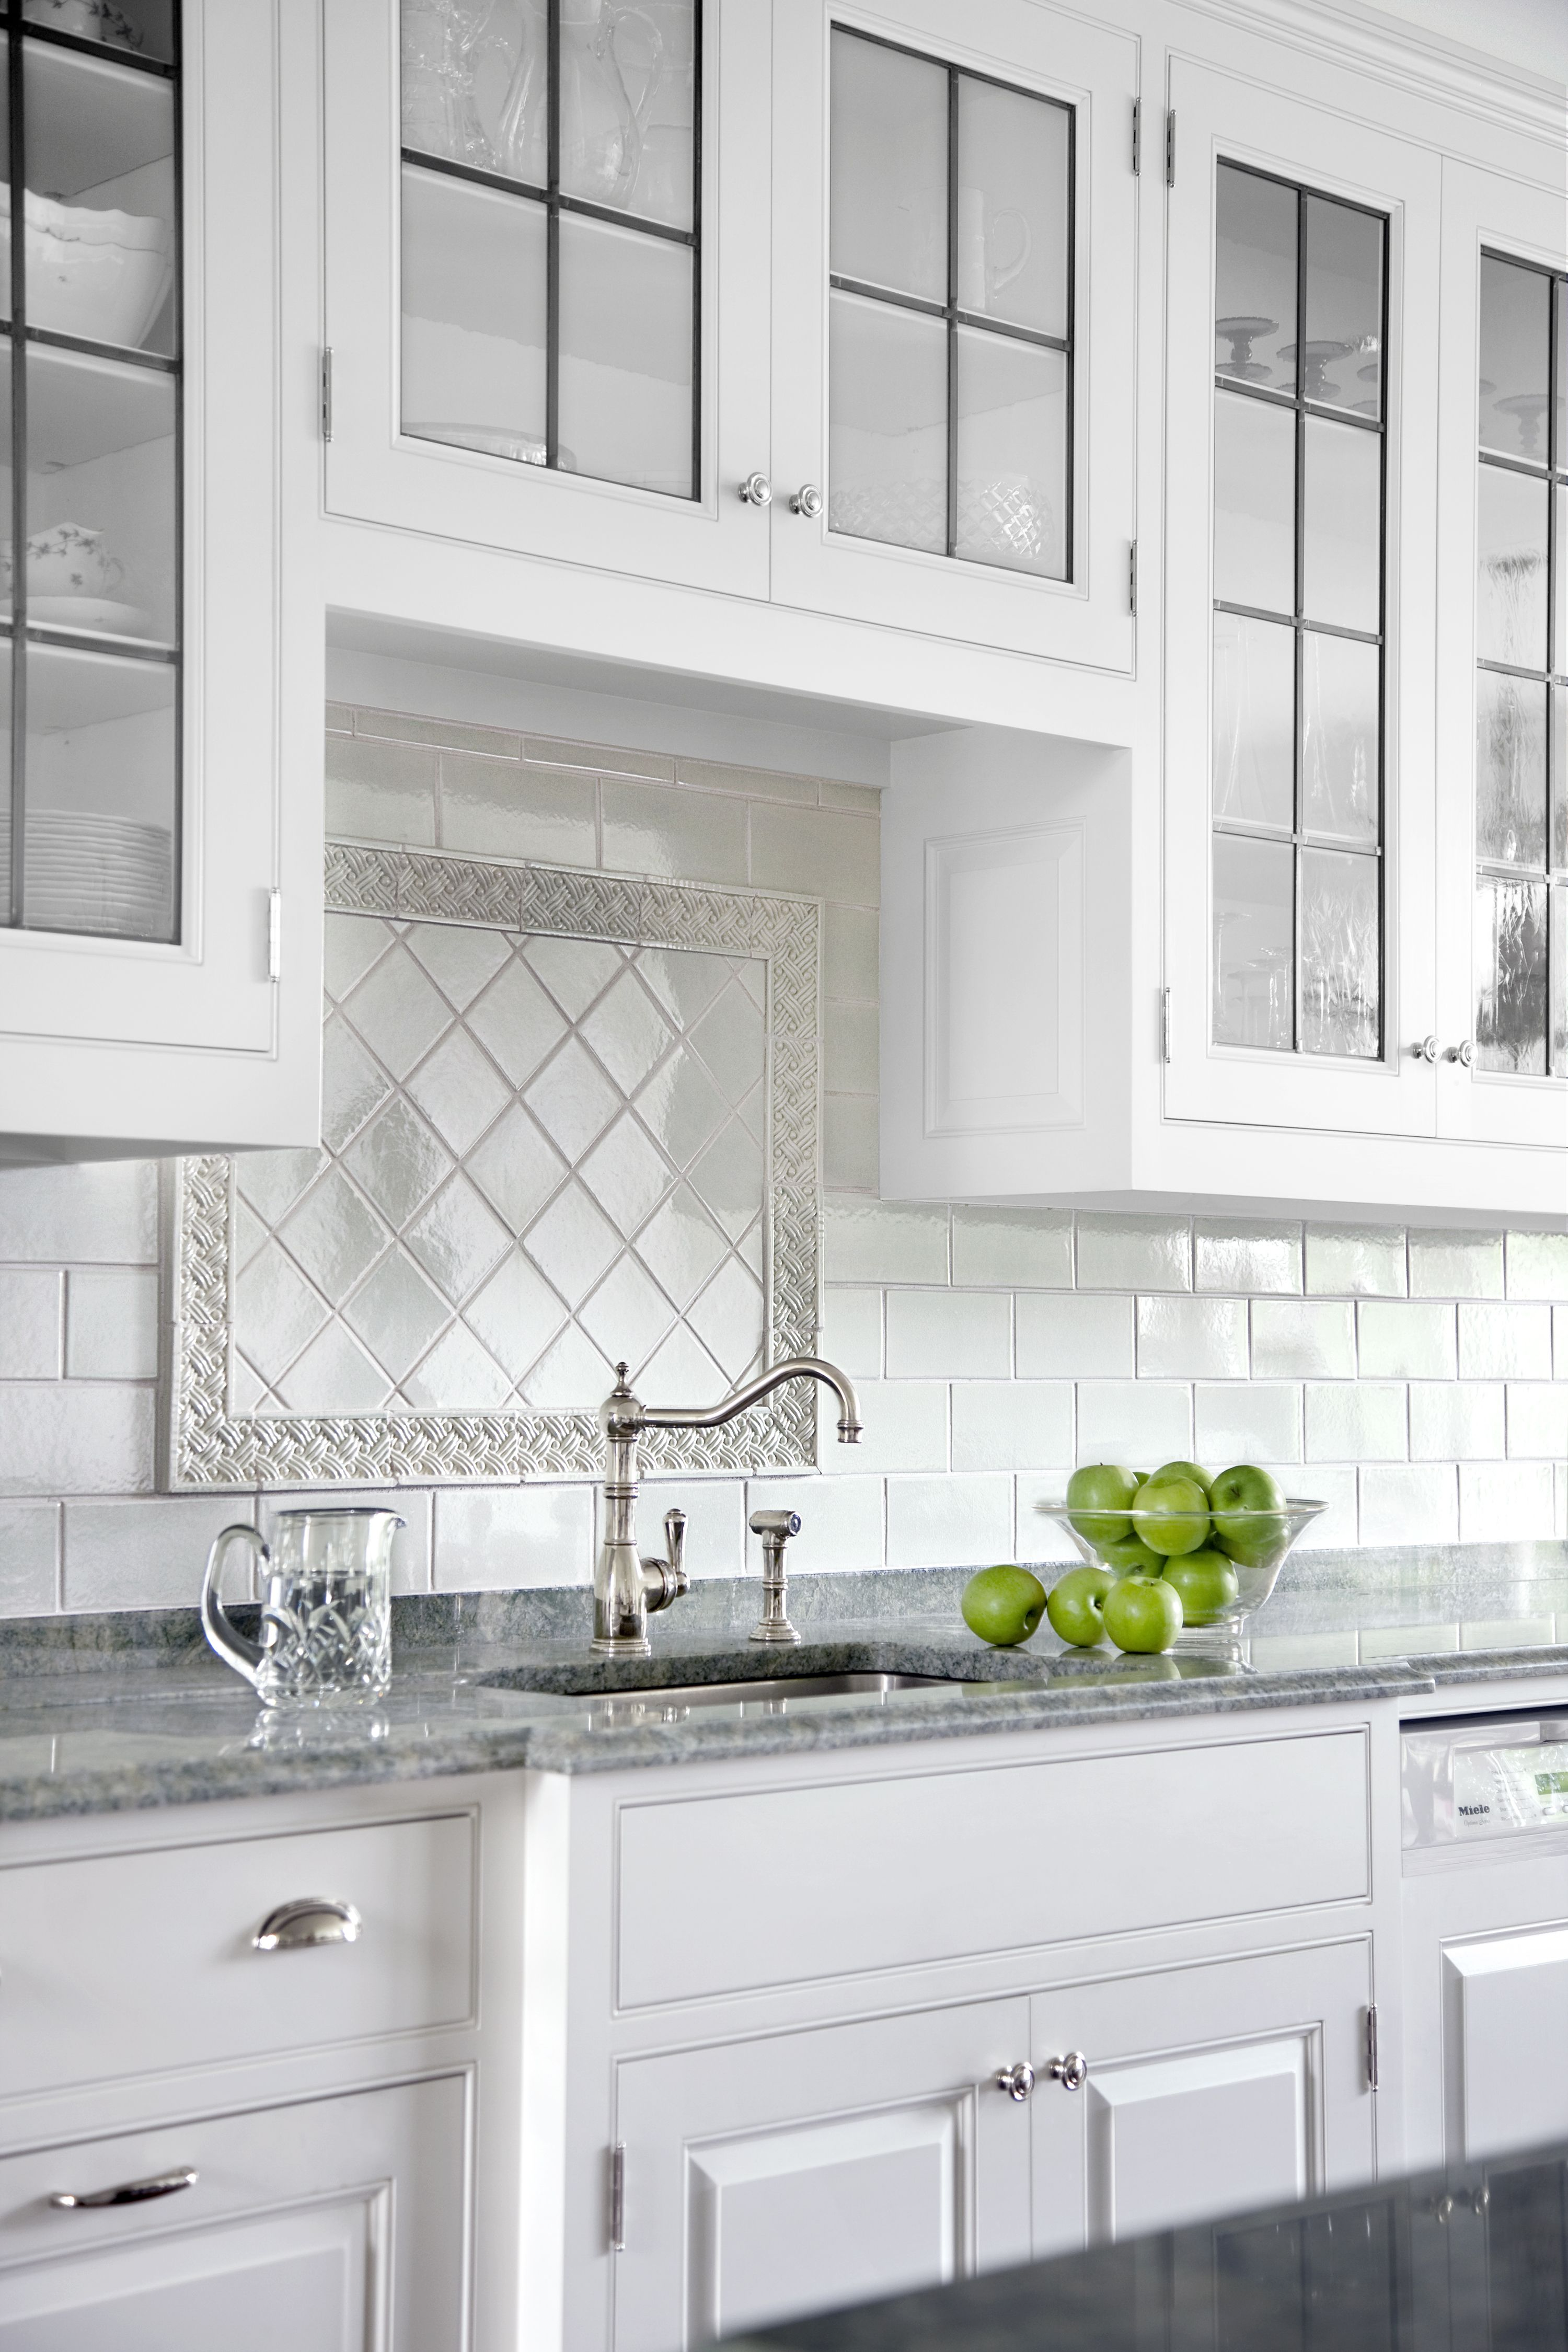 All About Ceramic Subway Tile Stove Backsplash White